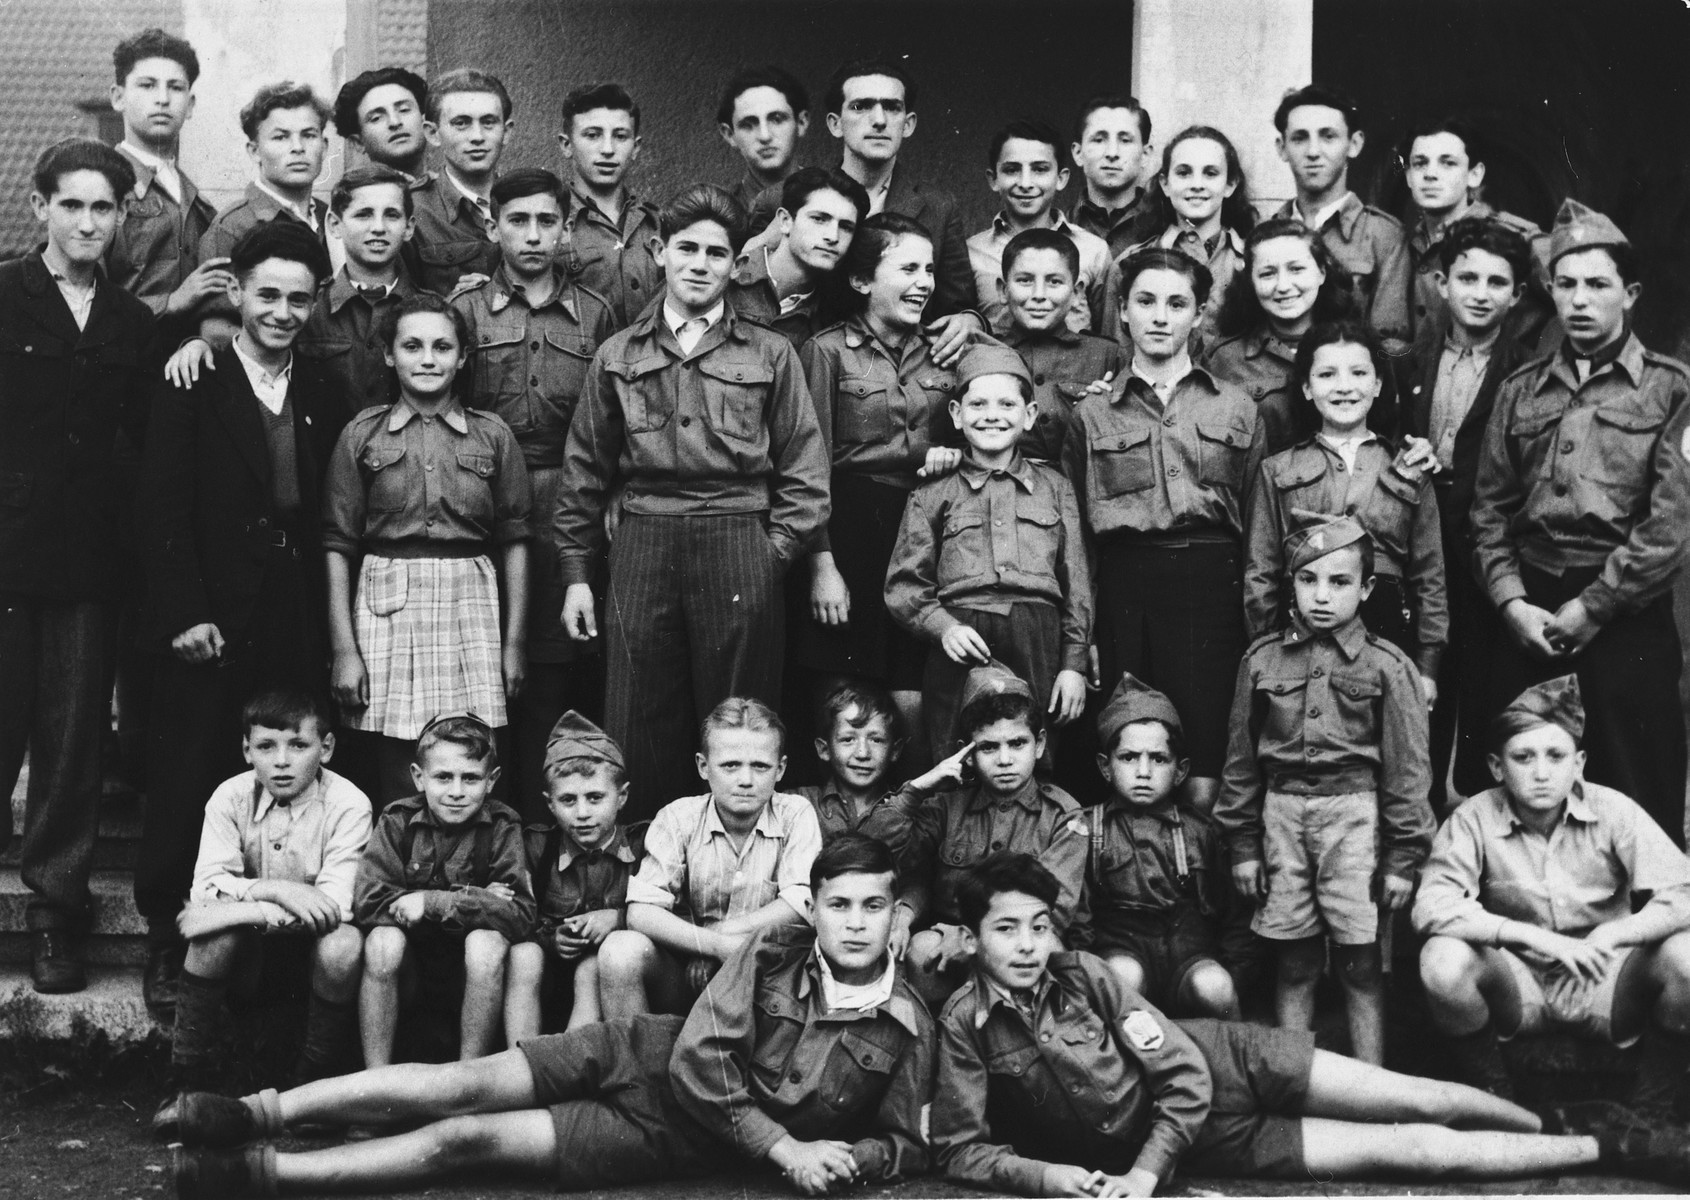 Group portrait of the Betar Zionist youth group in the Eschwegedisplaced person' camp.